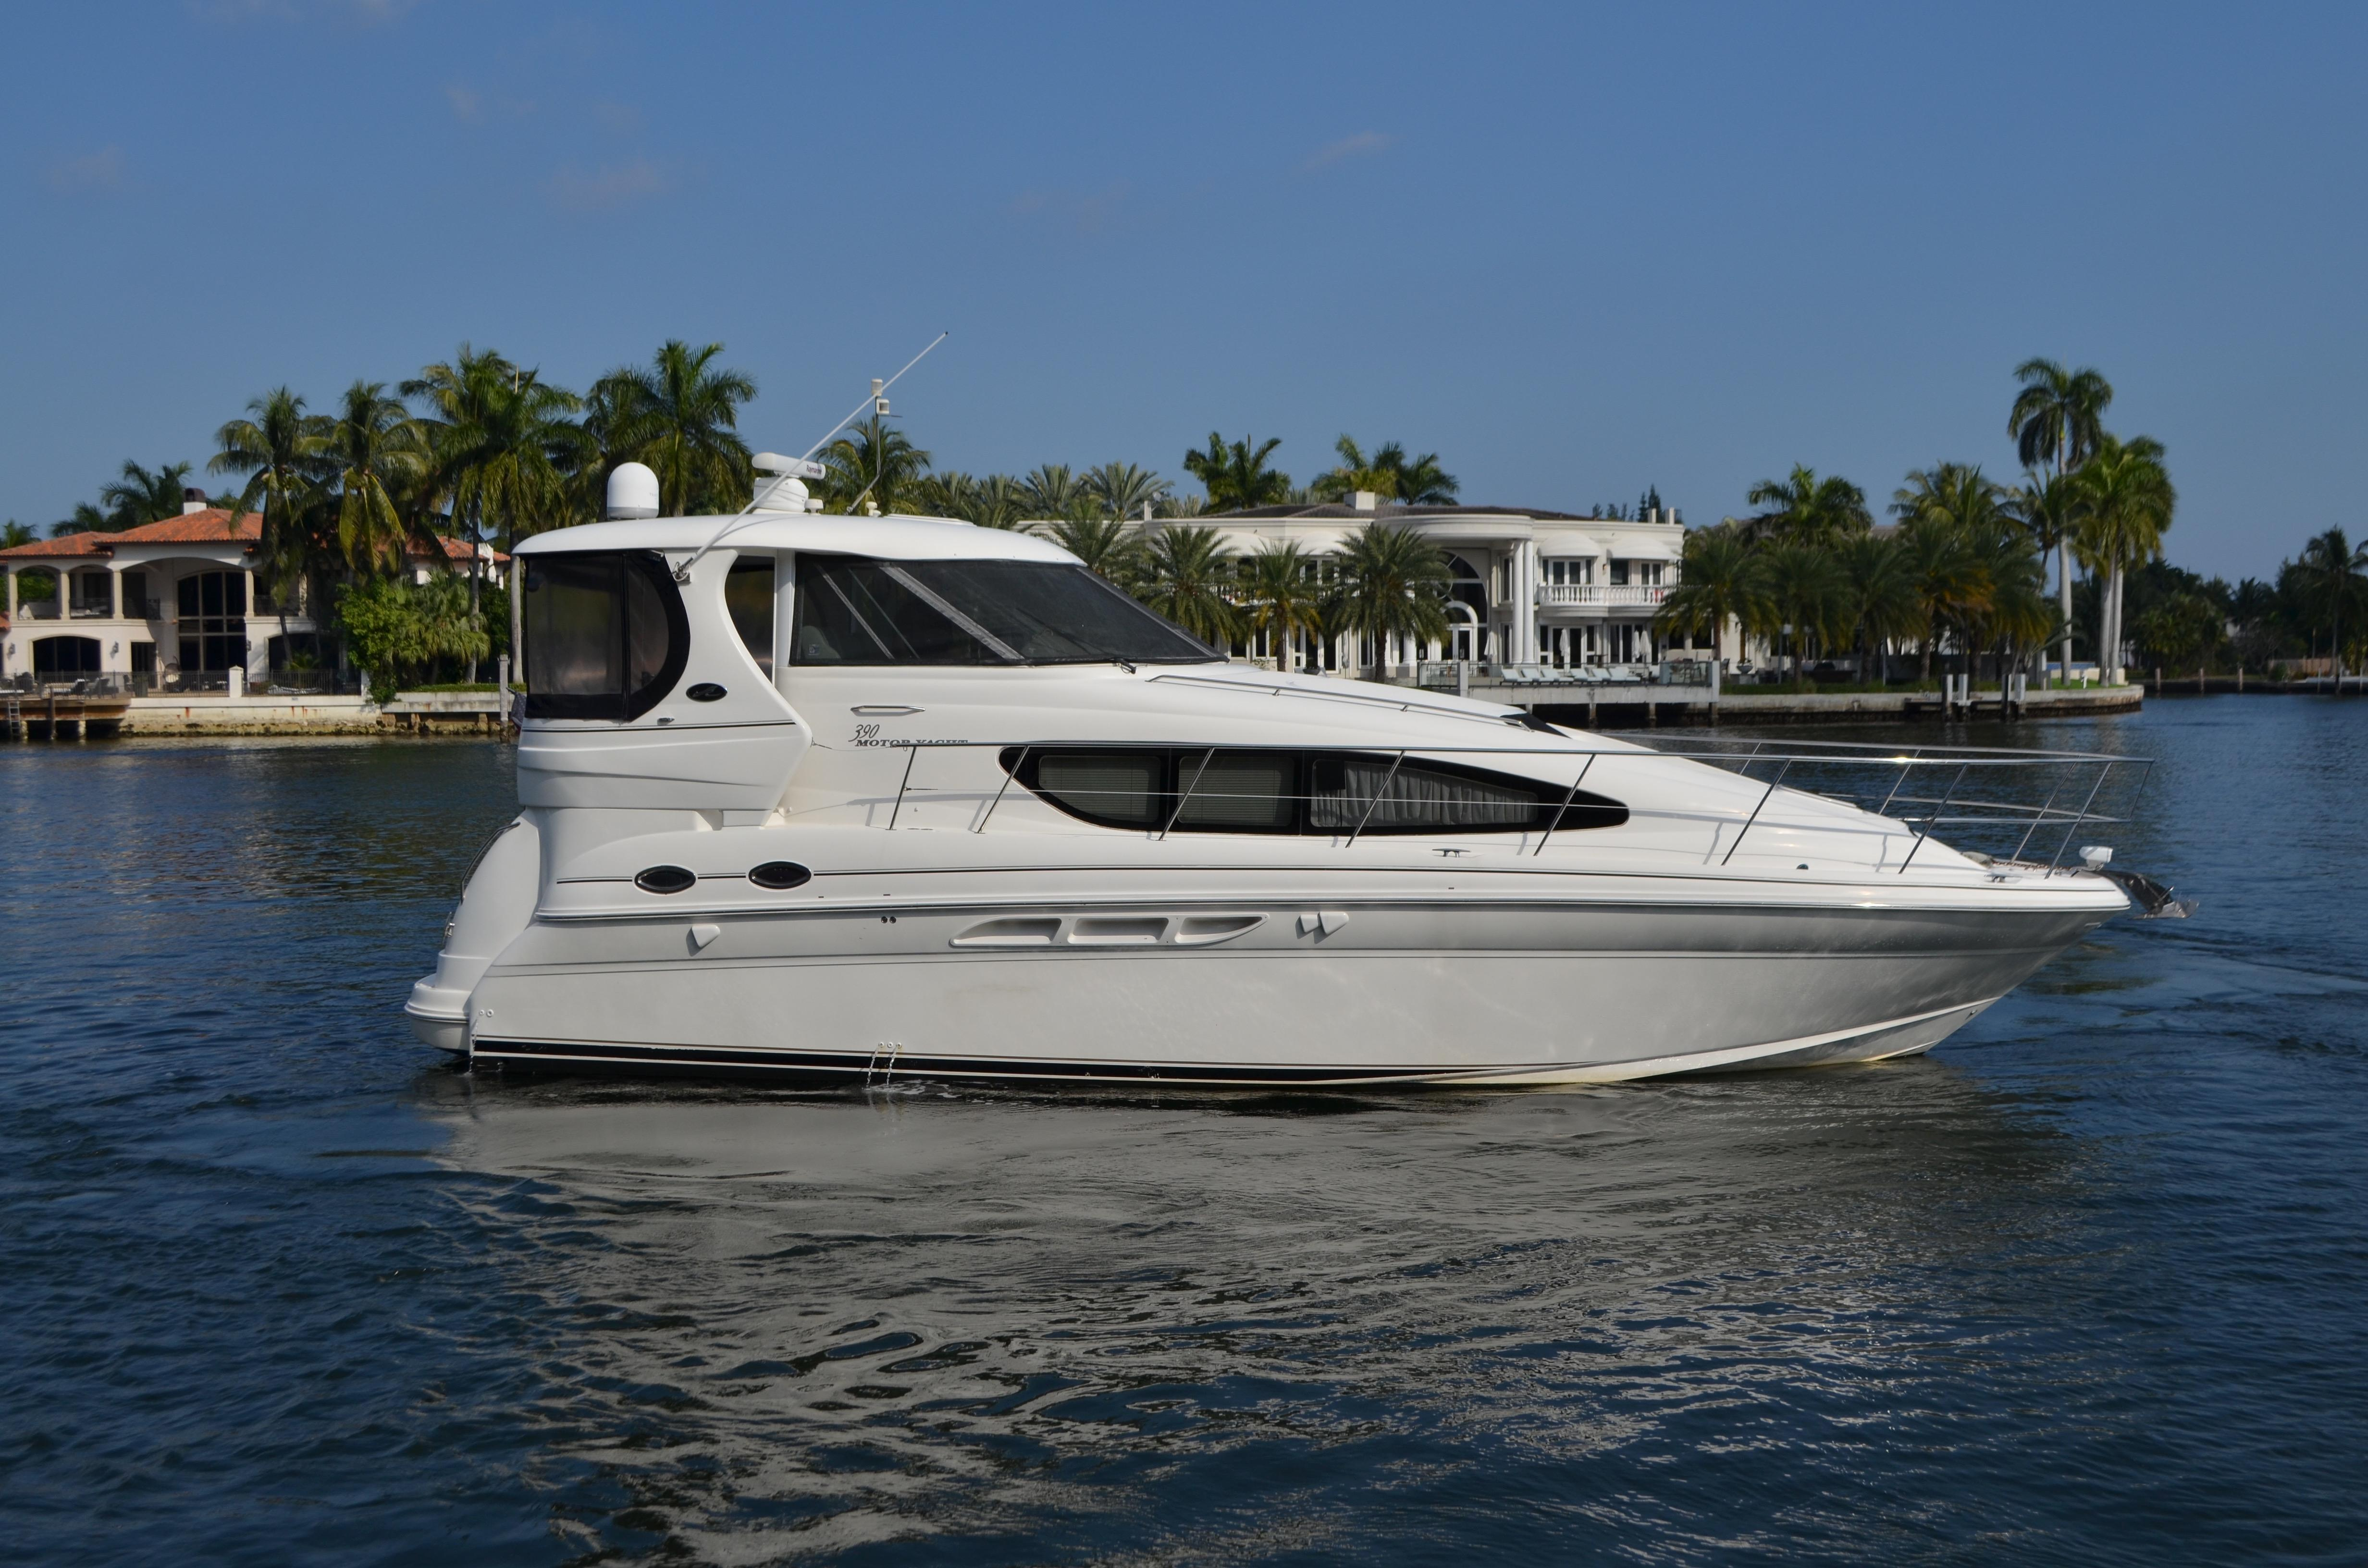 Sea Ray Motor Yacht